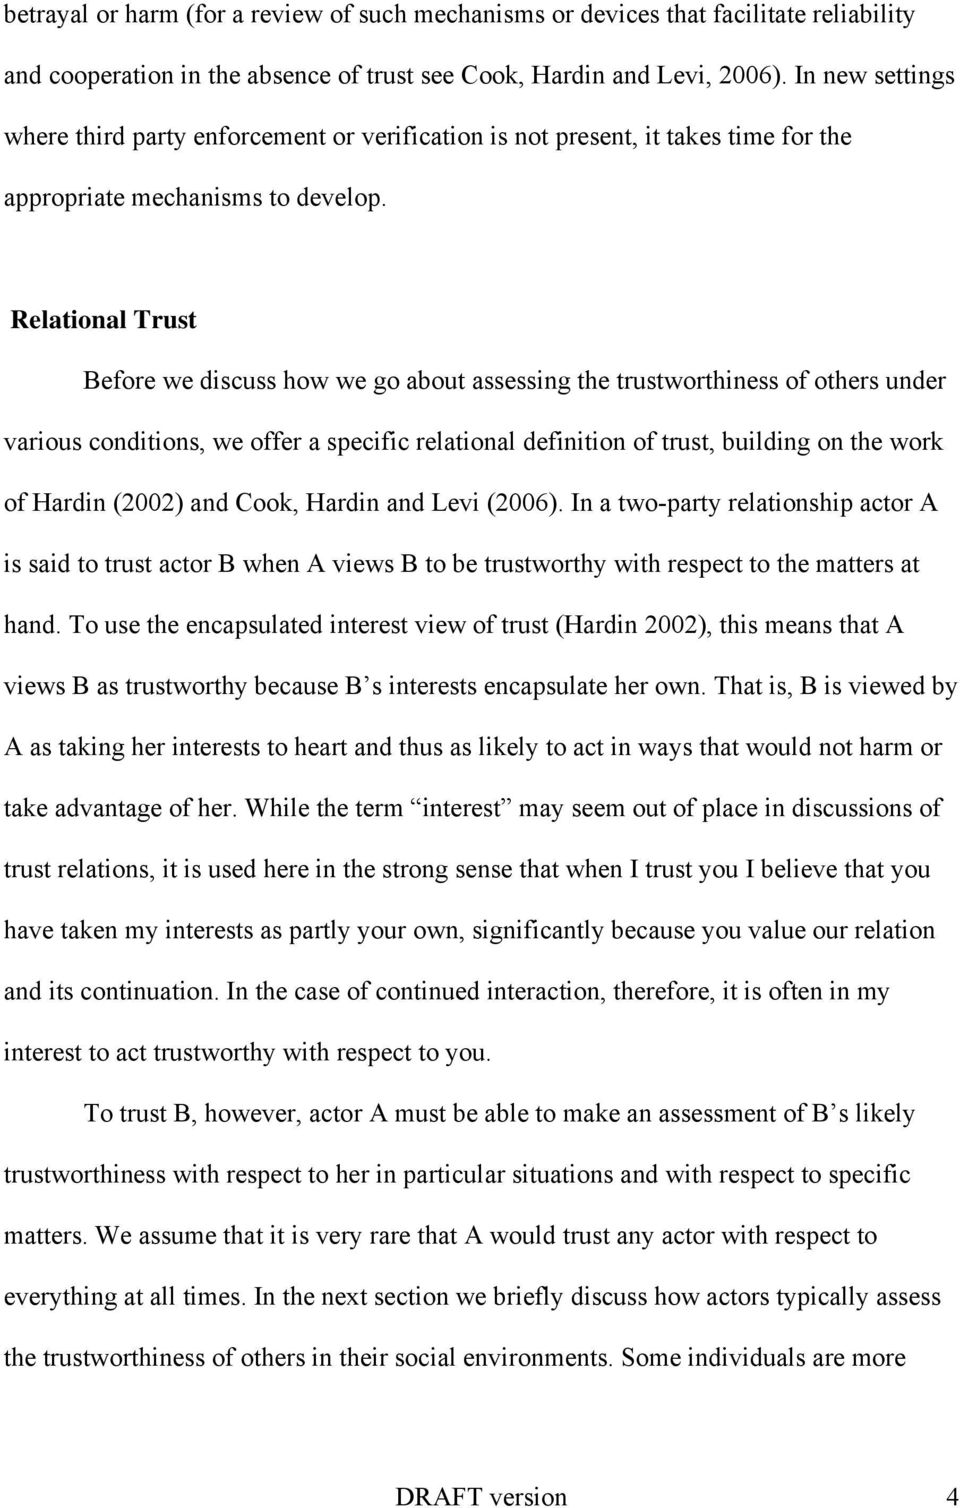 Relational Trust Before we discuss how we go about assessing the trustworthiness of others under various conditions, we offer a specific relational definition of trust, building on the work of Hardin